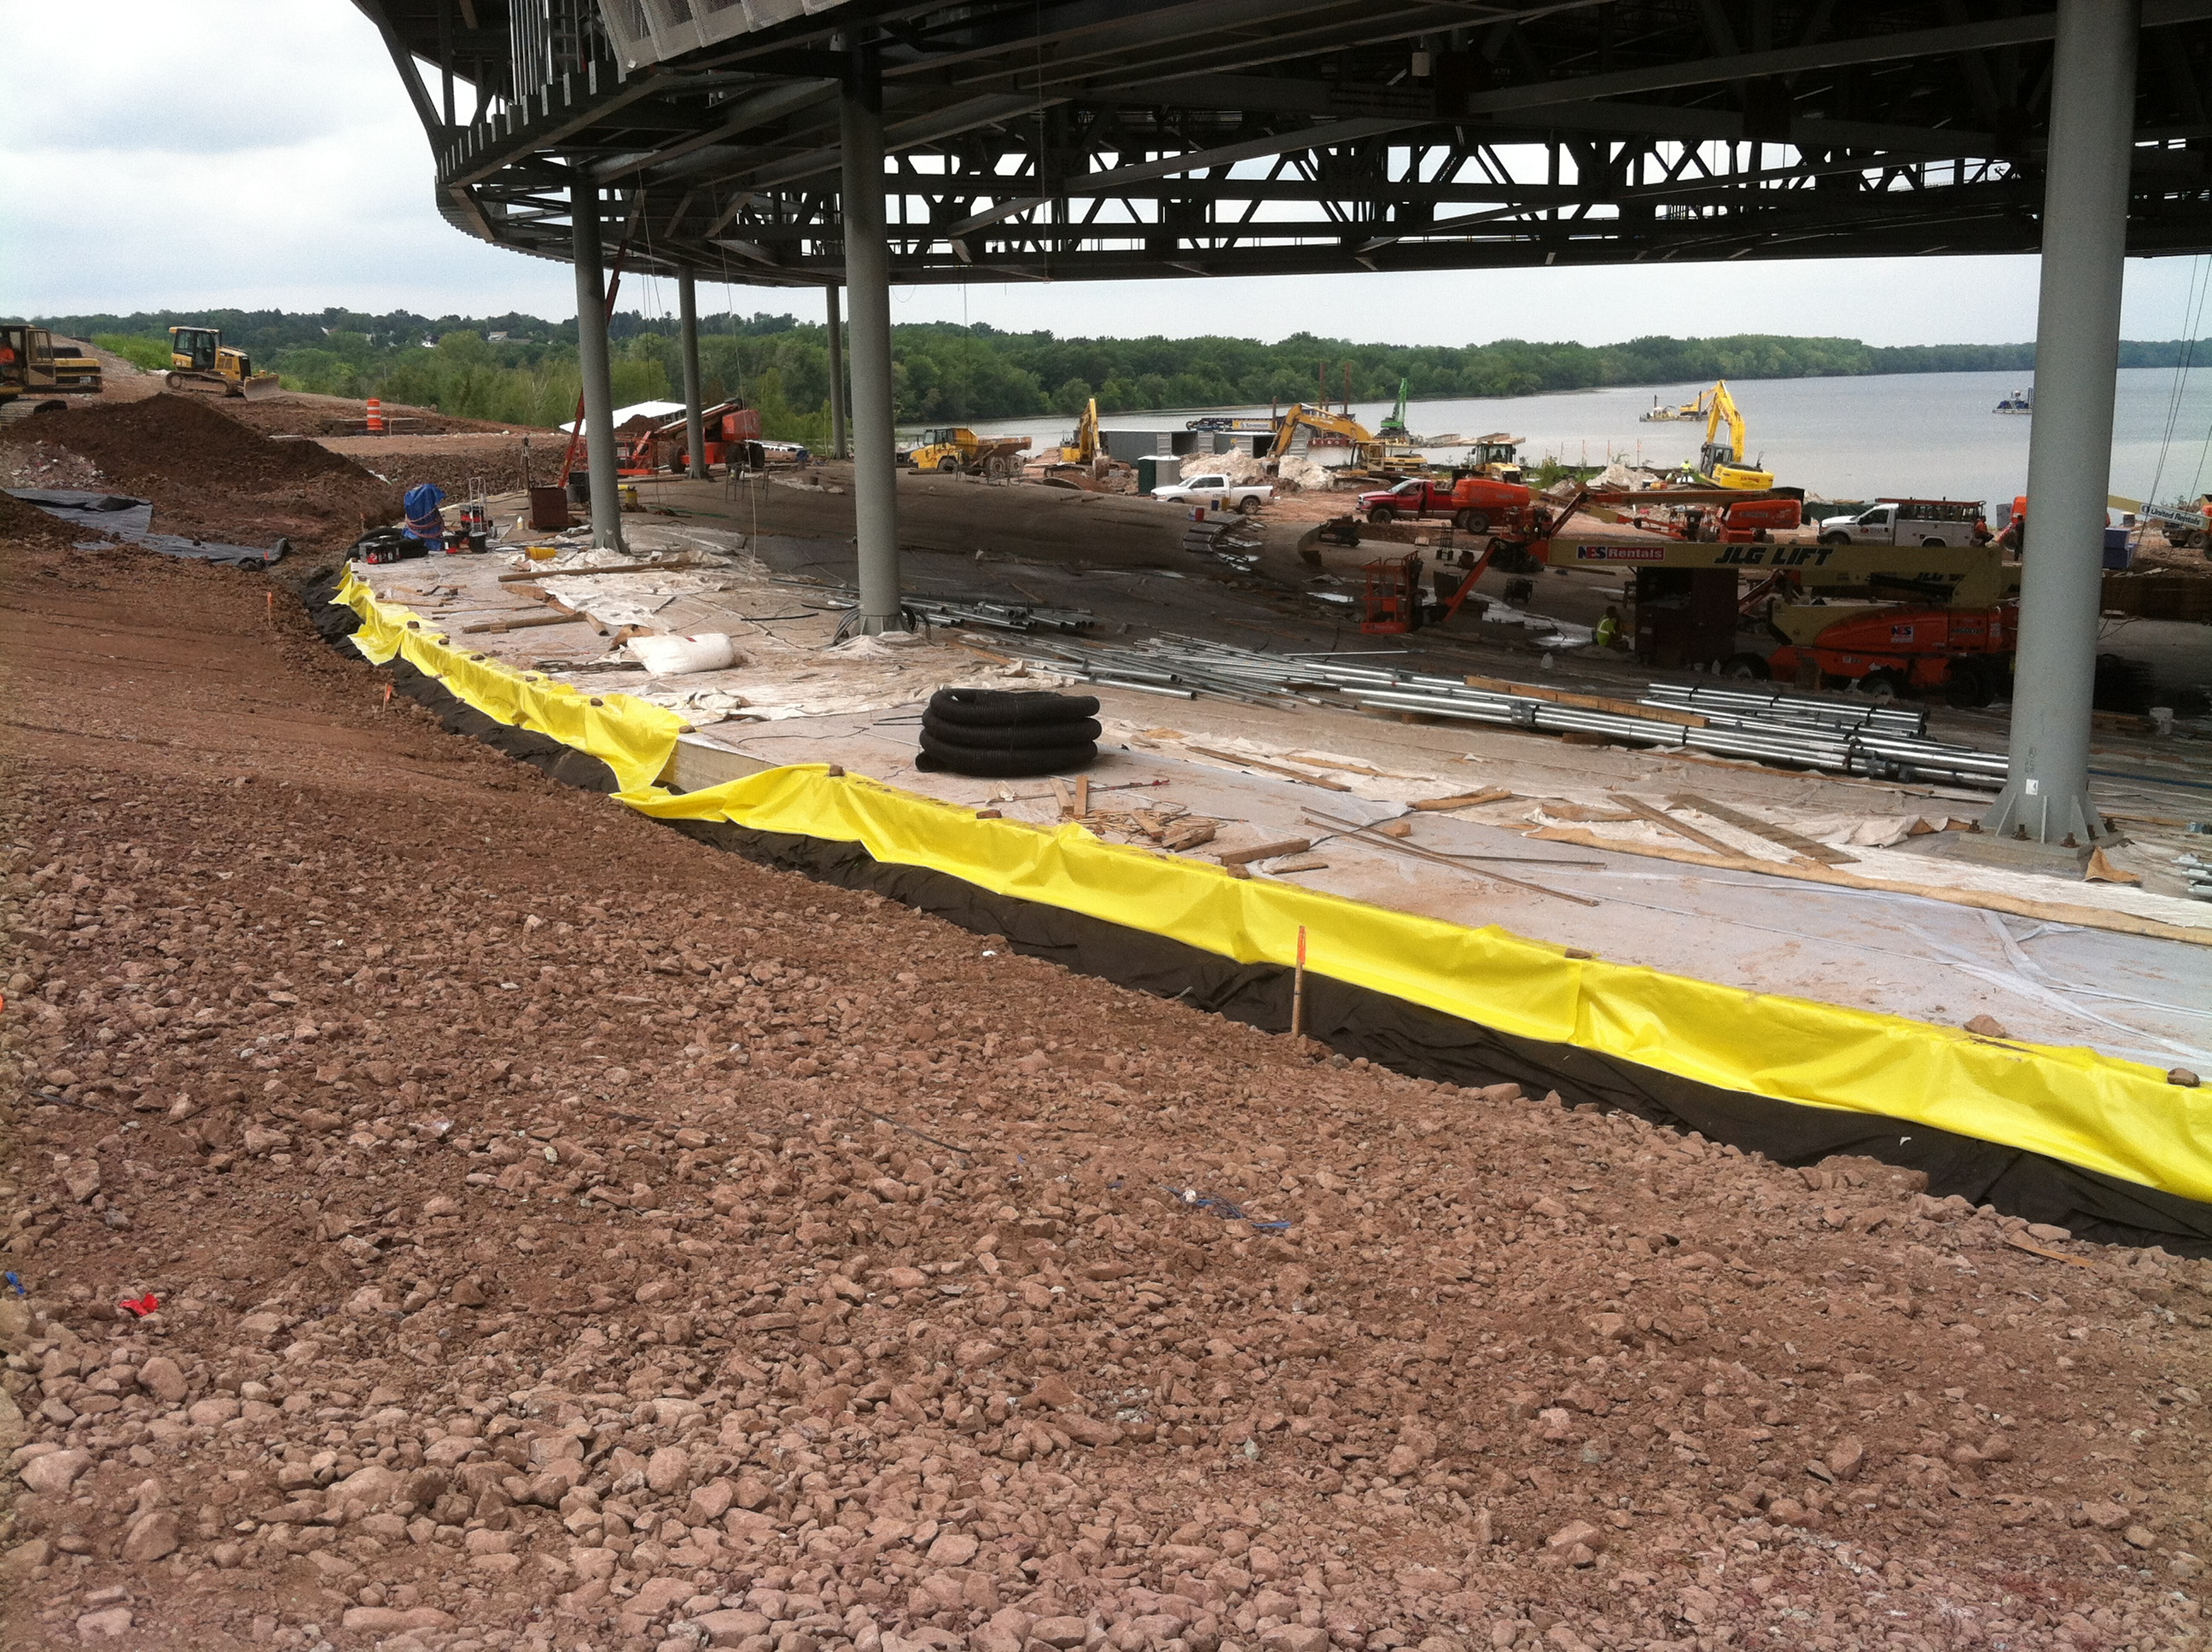 John P. Stopen Lakeview Amphitheater Project construction